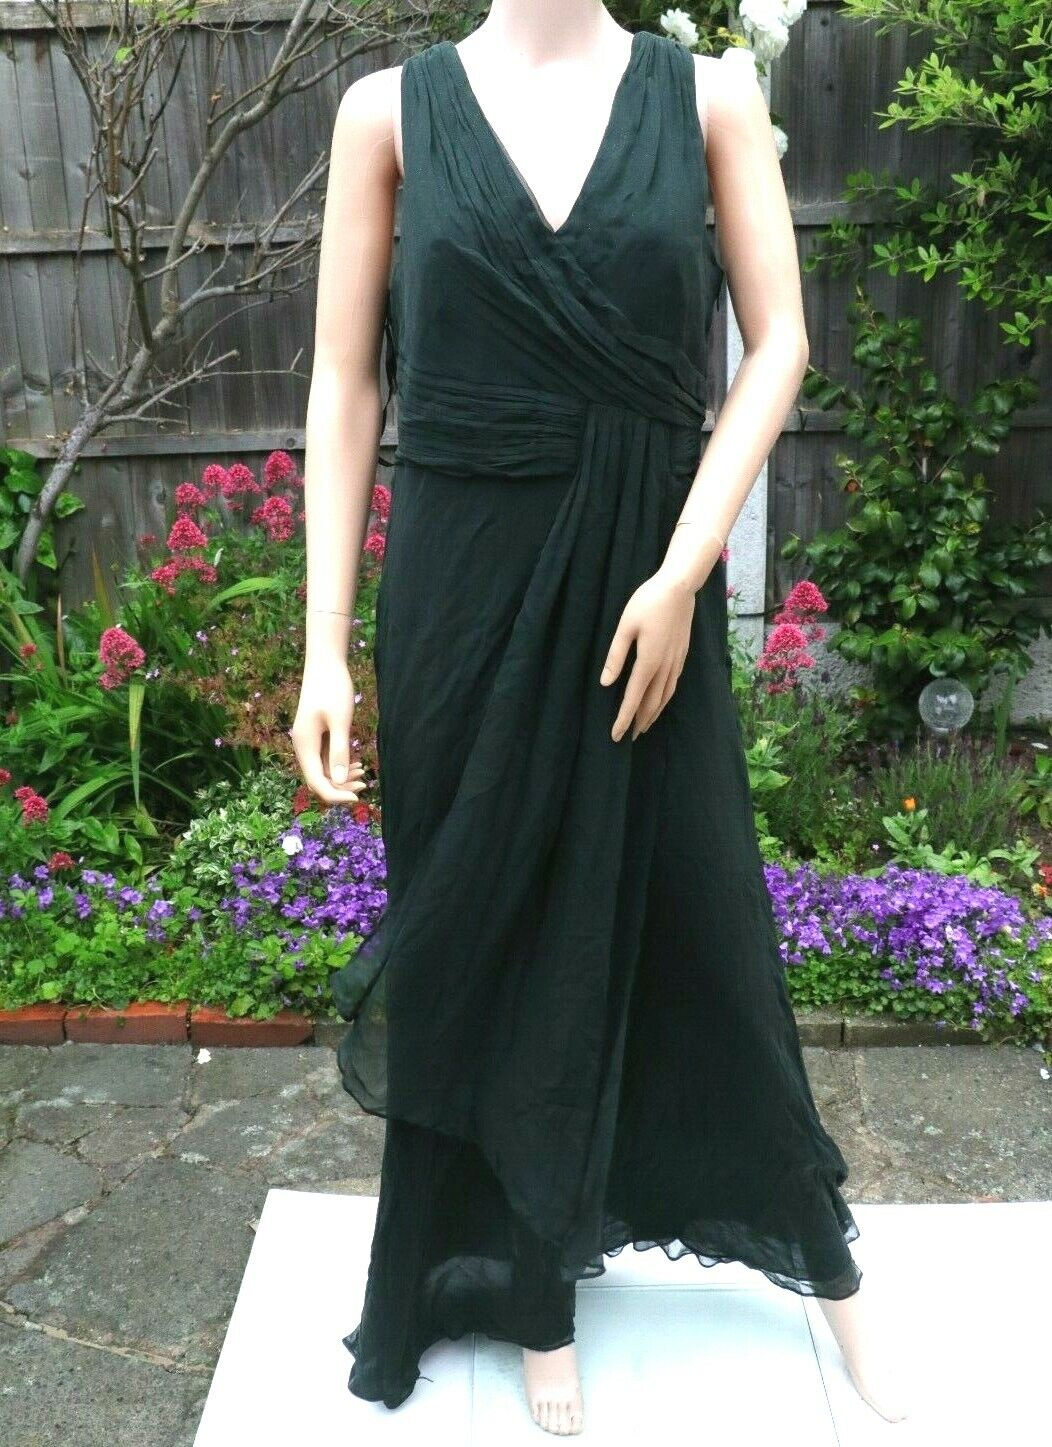 coast almera maxi party evening cocktail dress in green uk14